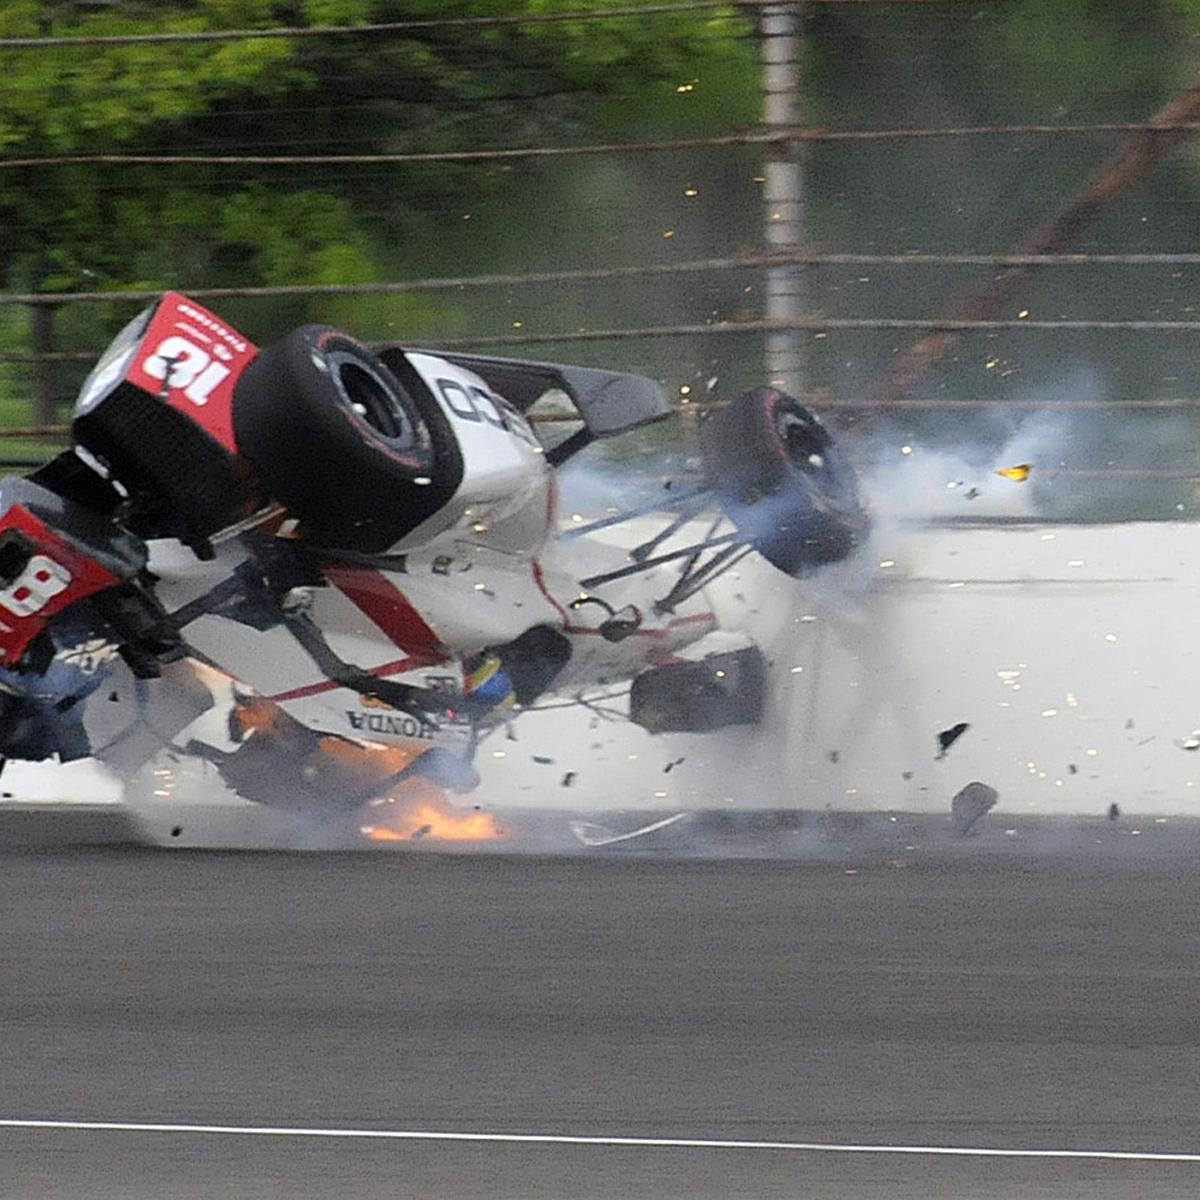 sebastien bourdais to have surgery after fiery crash in indy 500 qualifying bleacher report. Black Bedroom Furniture Sets. Home Design Ideas